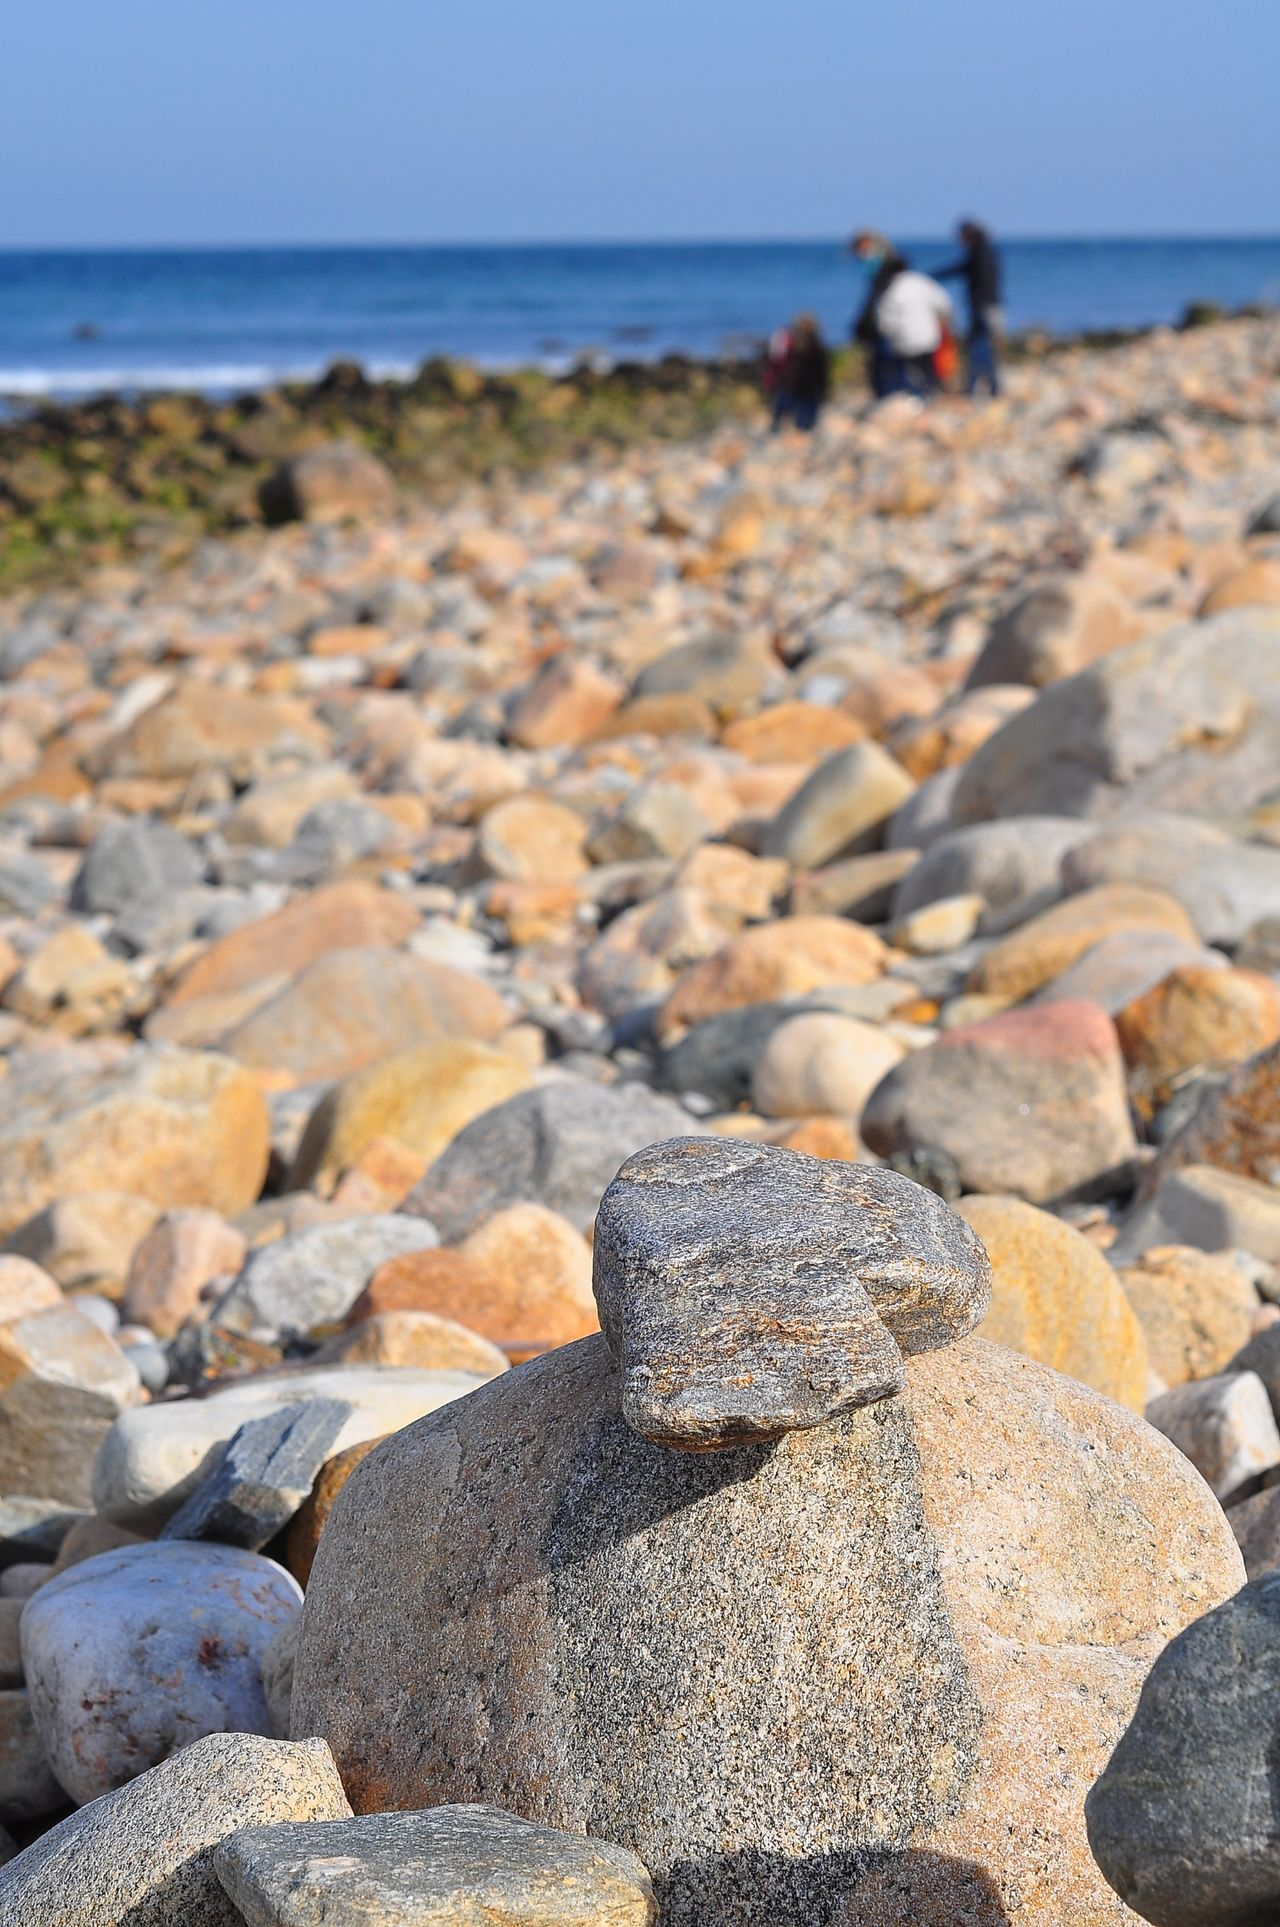 Adult Adults Only Beach Close-up Day Hampton Beach Horizon Over Water New York Outdoors People Rock - Object Sea Stone